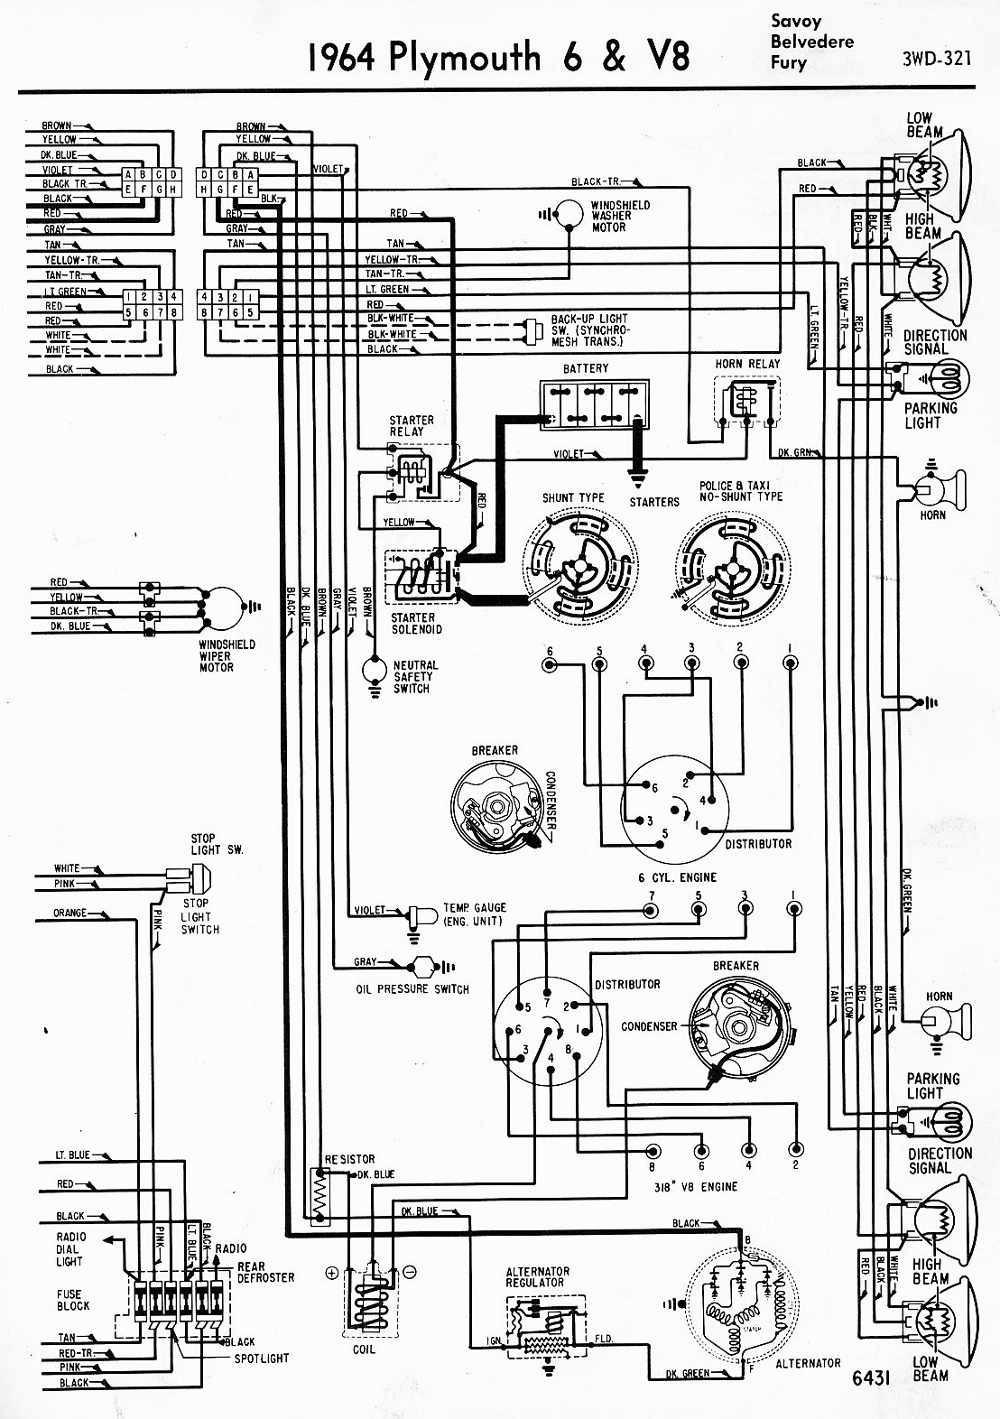 Plymouth Car Manuals Wiring Diagrams Pdf Fault Codes Gibson Washer Diagram Download